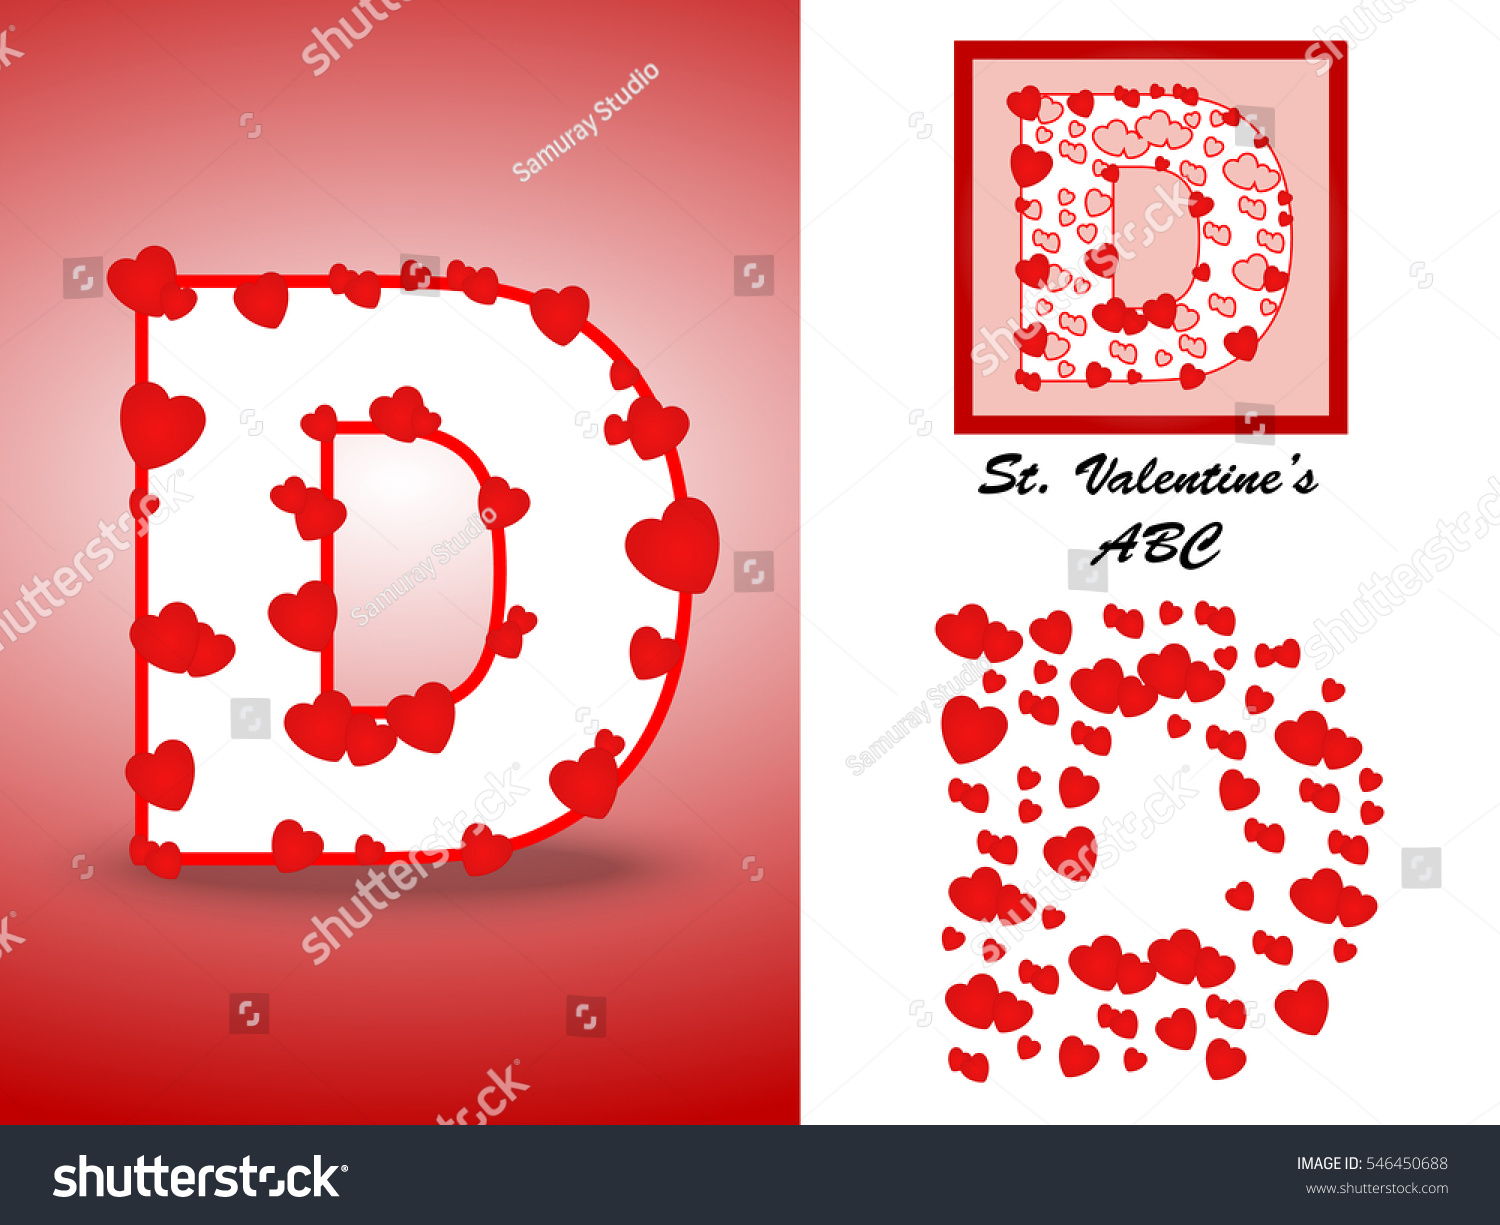 Alphabet Letter D Red Heart Valentine Stock Vector (Royalty Free ...